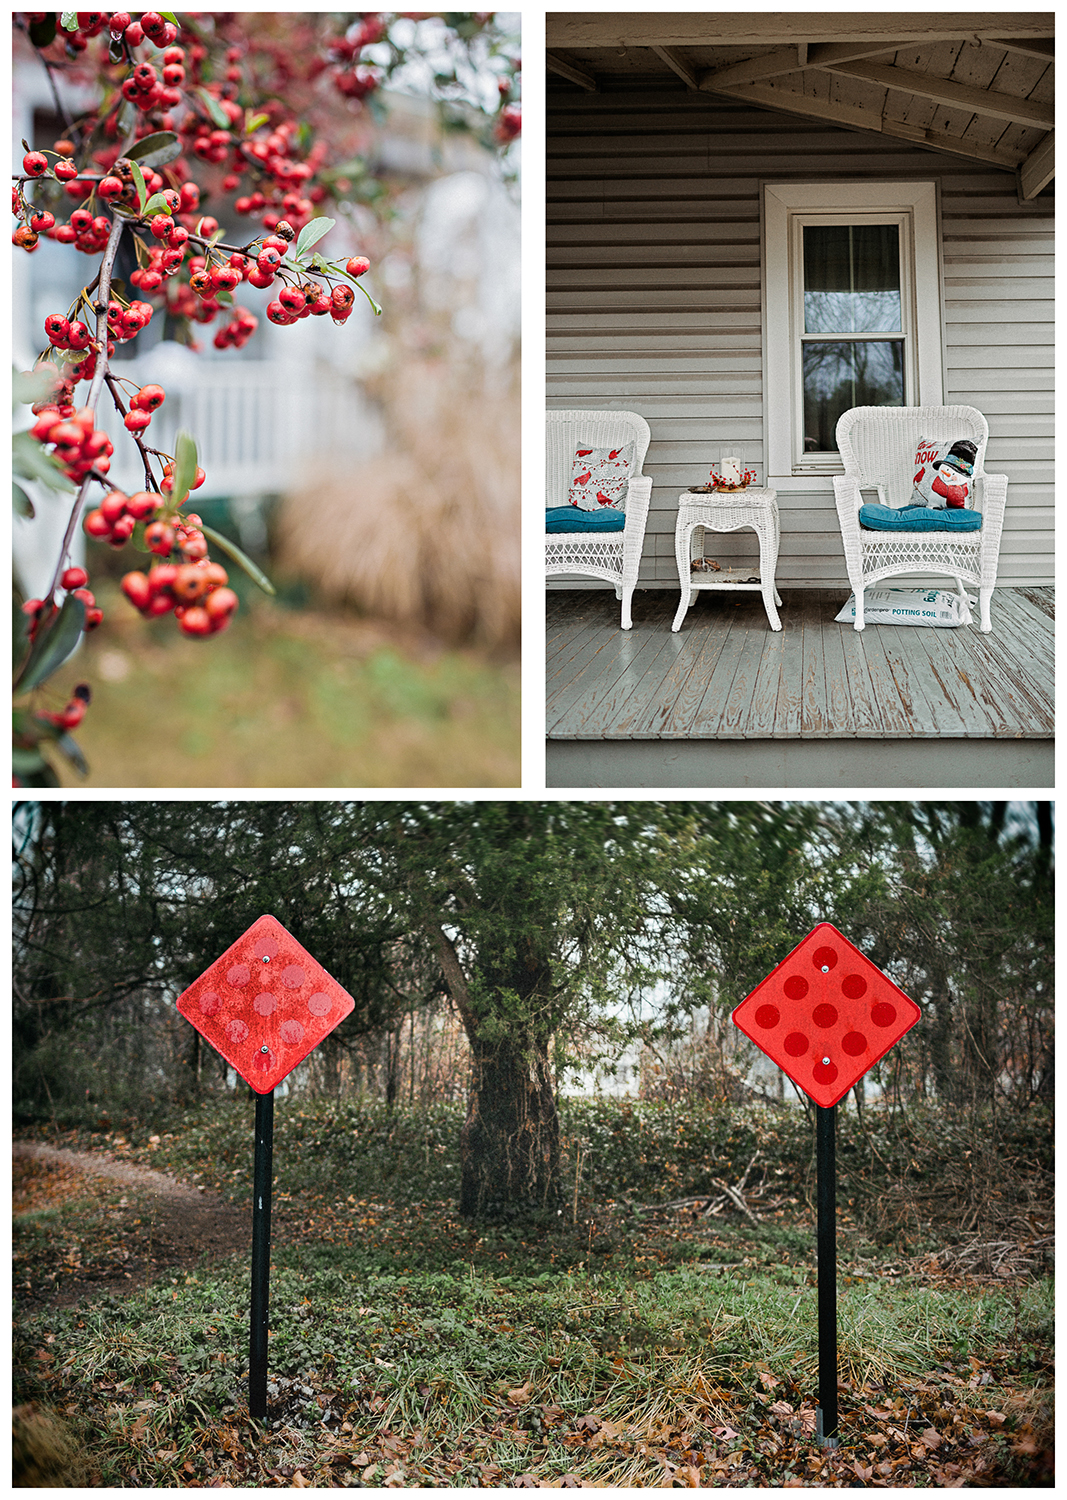 Red_Signs_Berries_Triptych.jpg